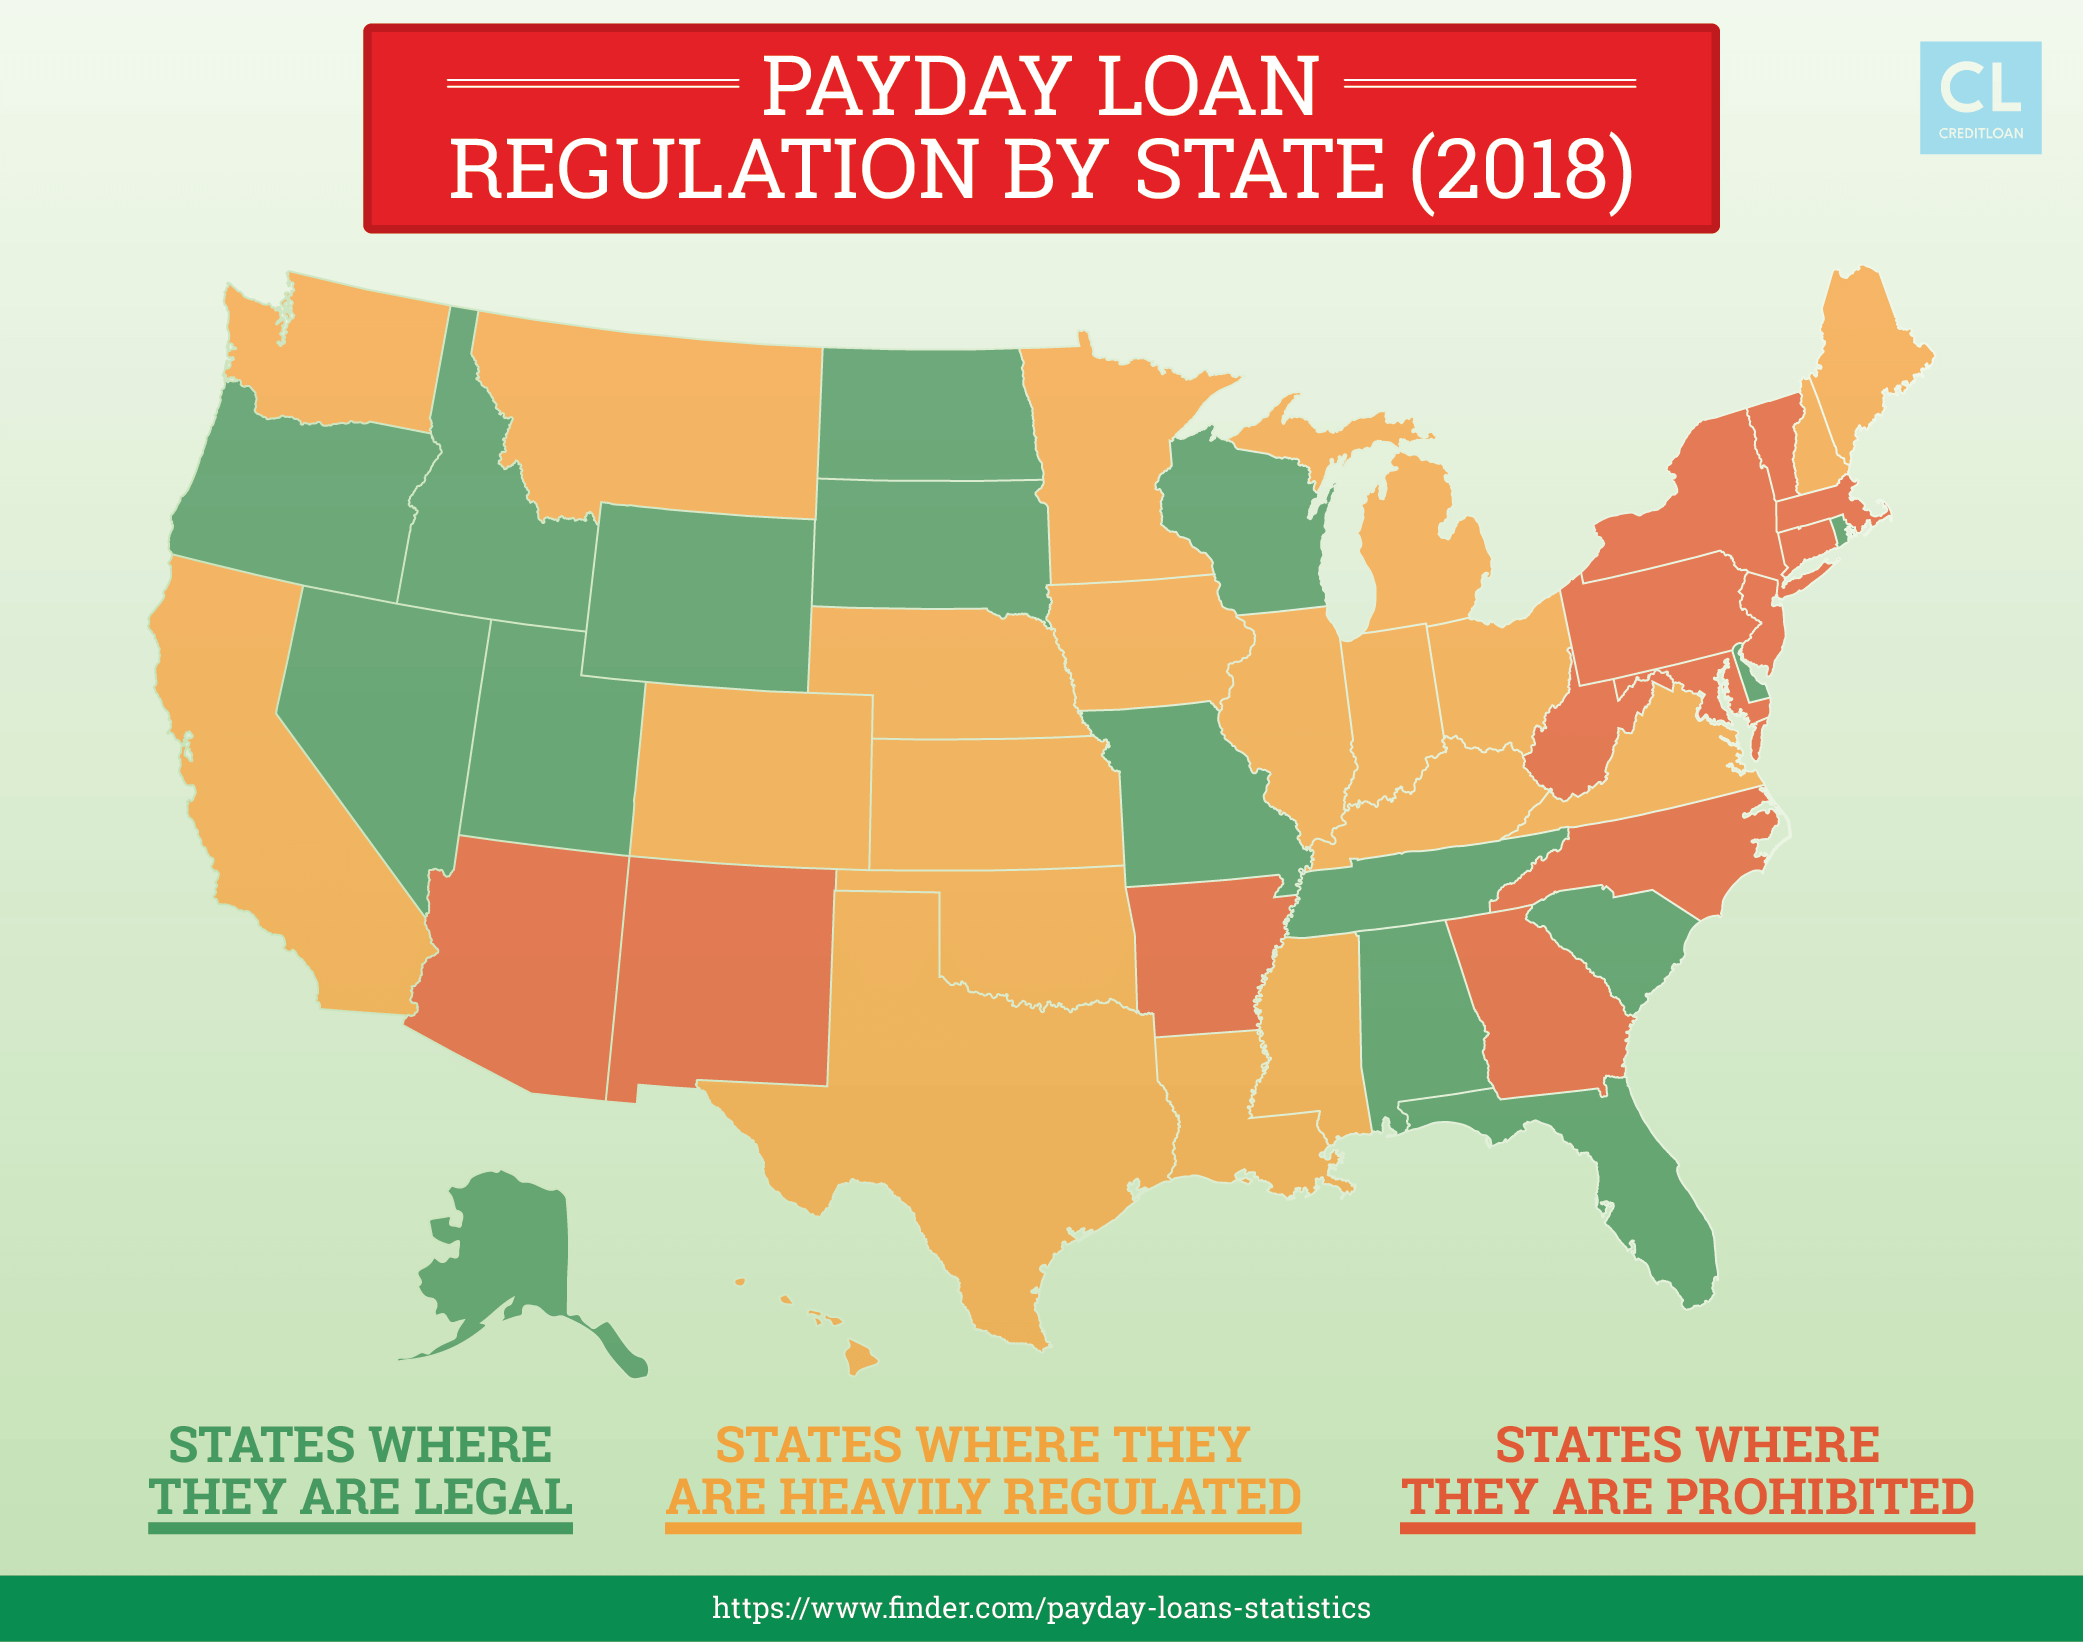 2018 Payday Loan Regulation By State